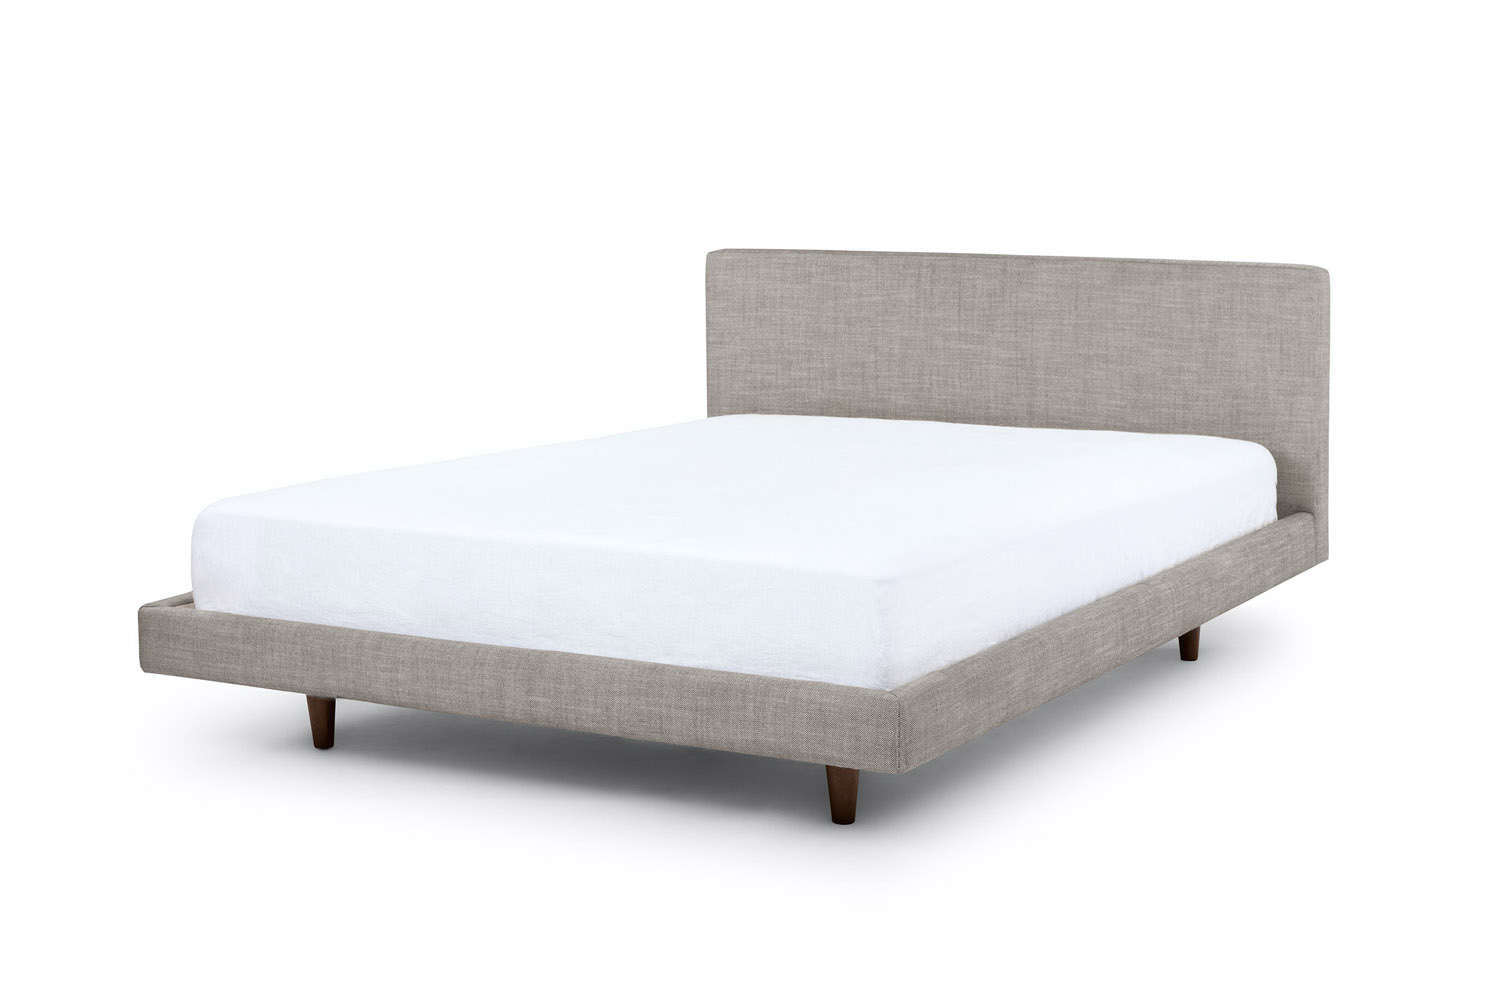 From furniture disruptor brand Article, the Tessu Glaze Gray Queen Bed is $699.